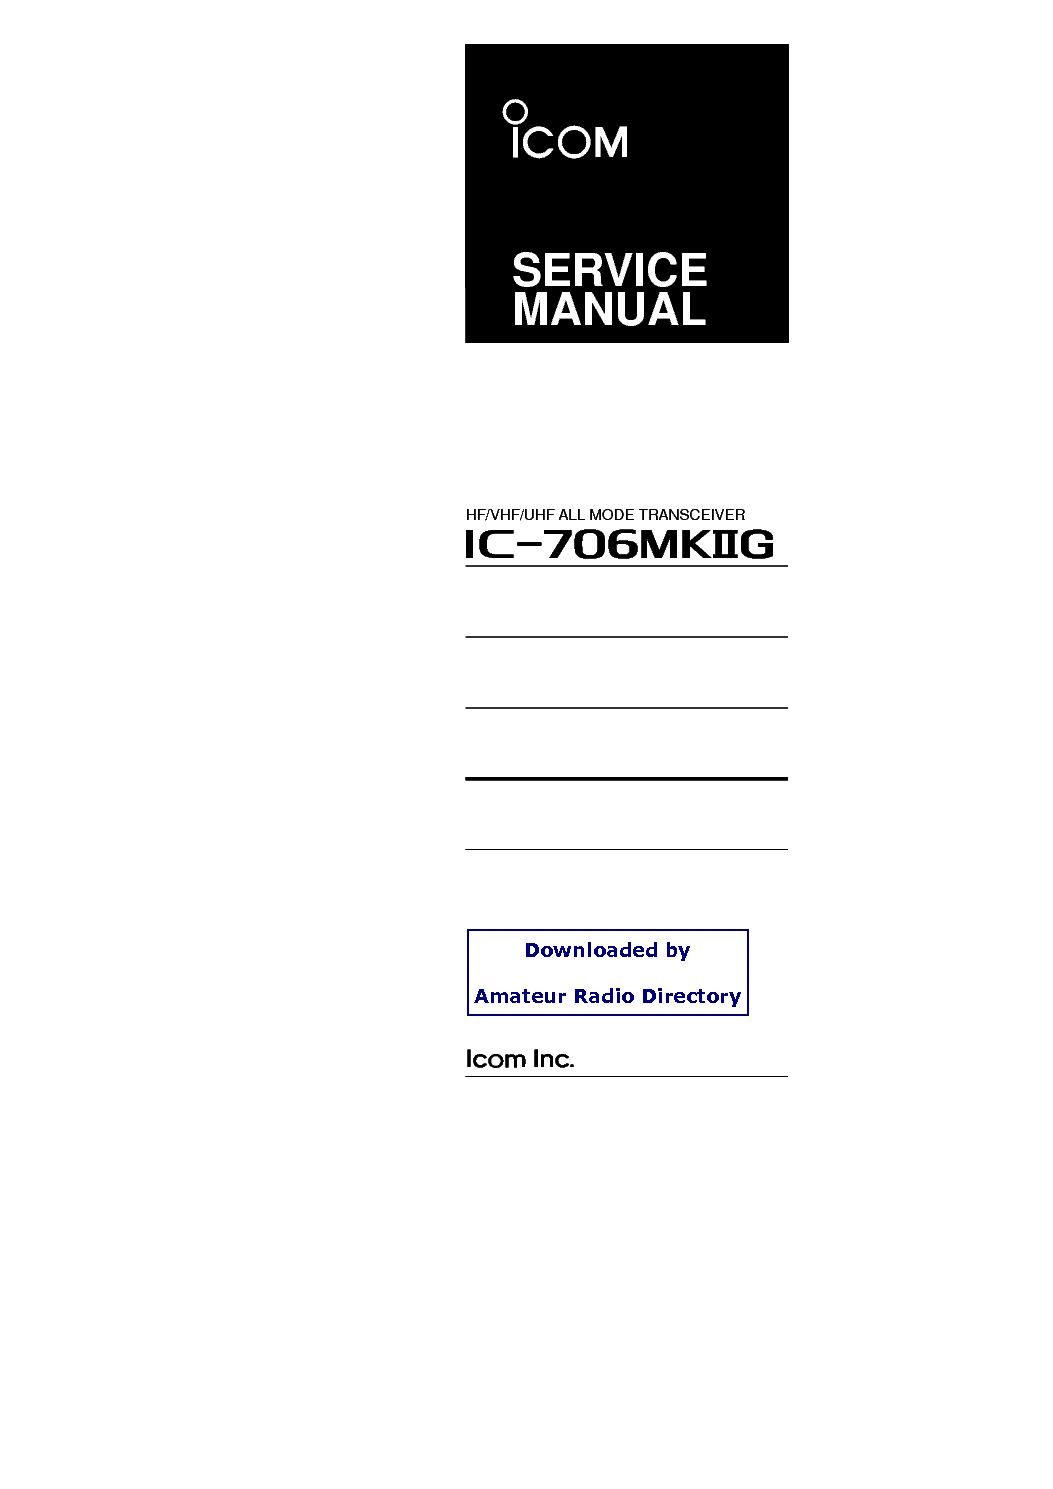 ICOM IC-706MKIIG service manual (1st page)